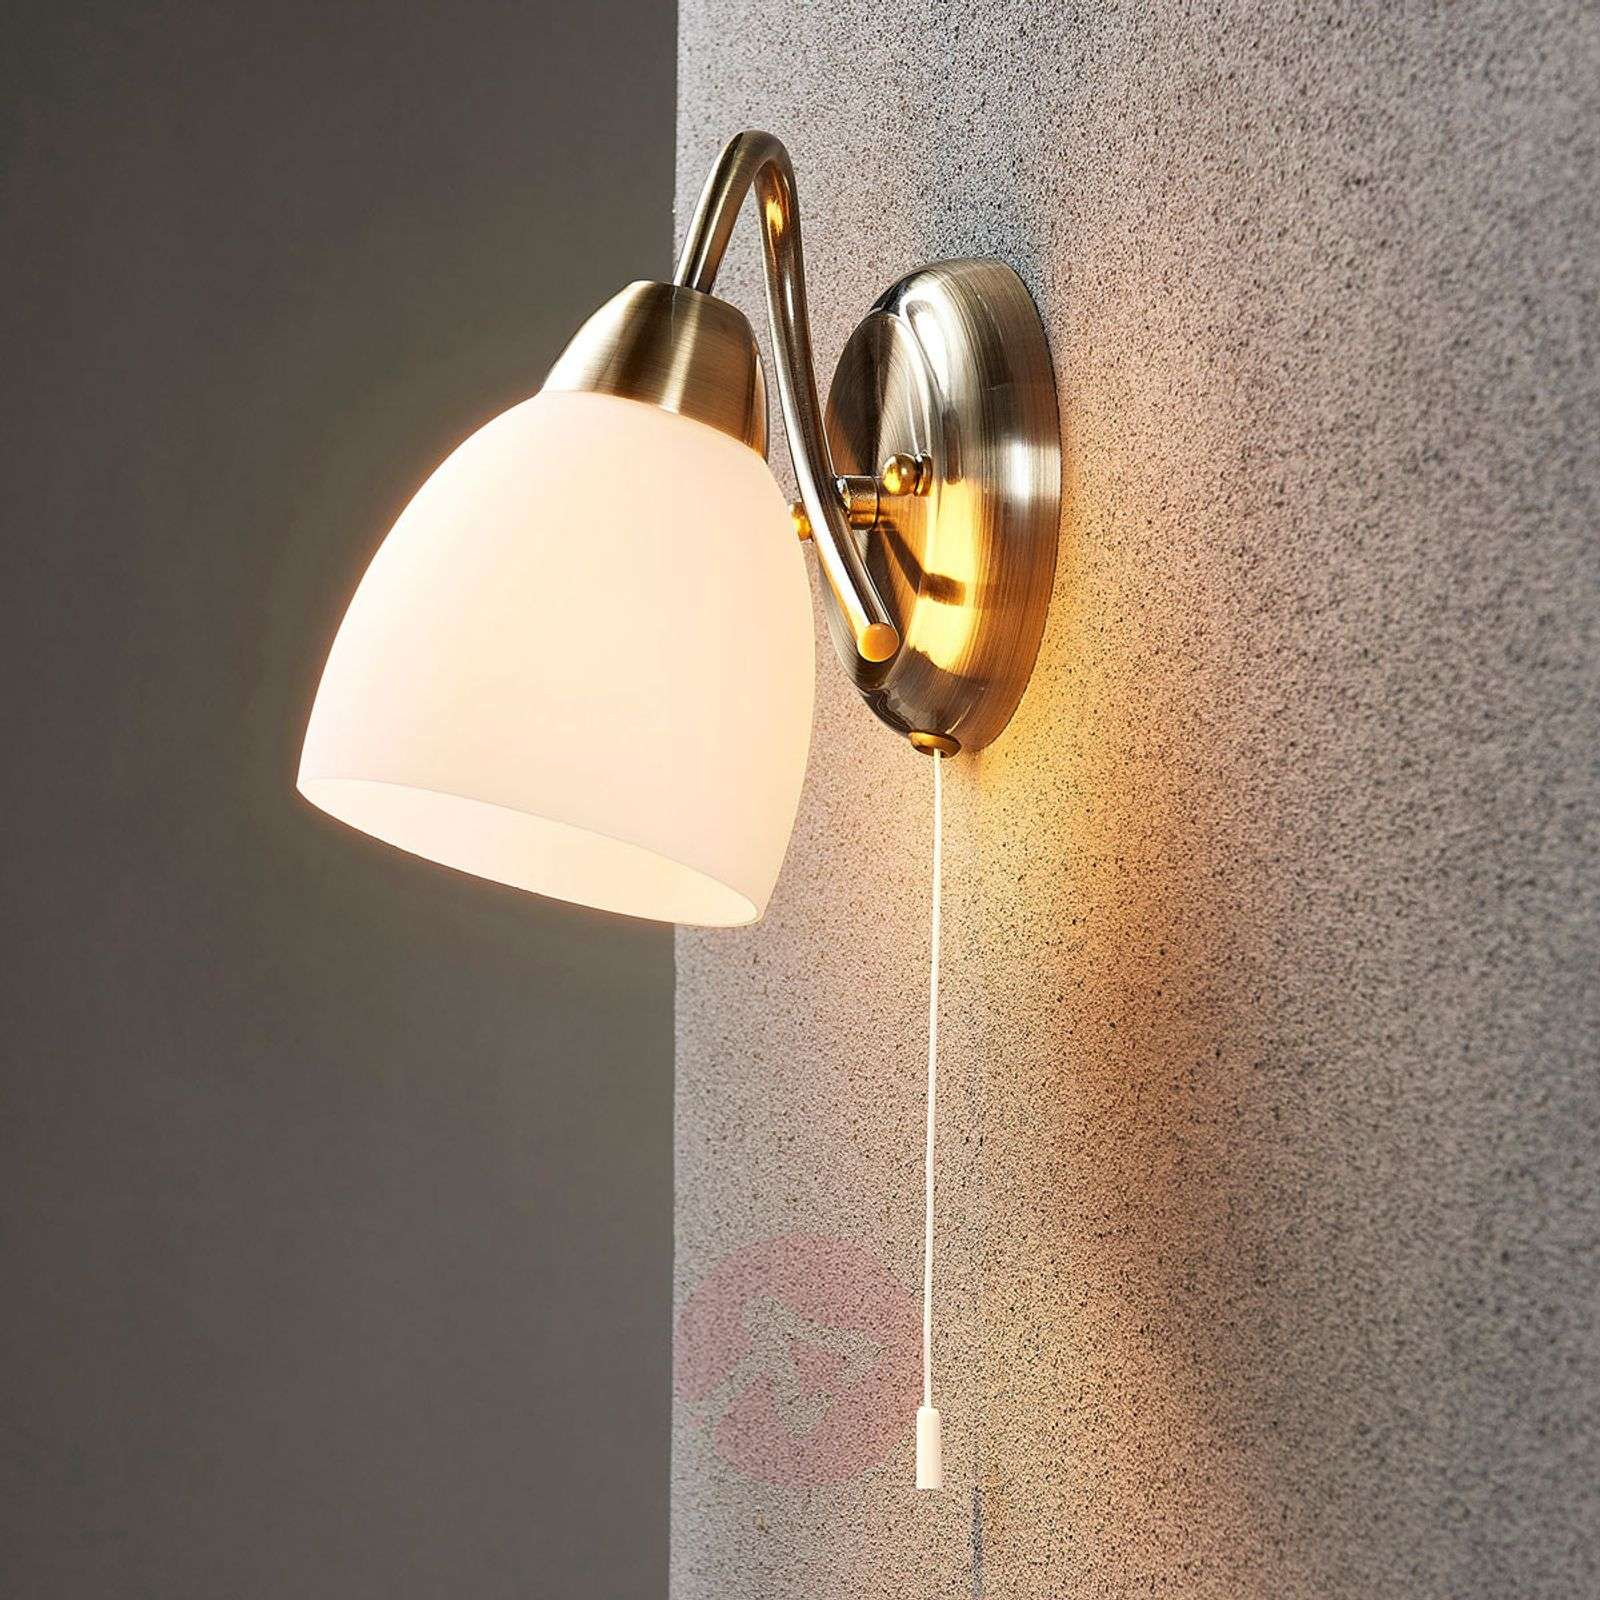 Wall light Mael with a pull switch-9620761-02